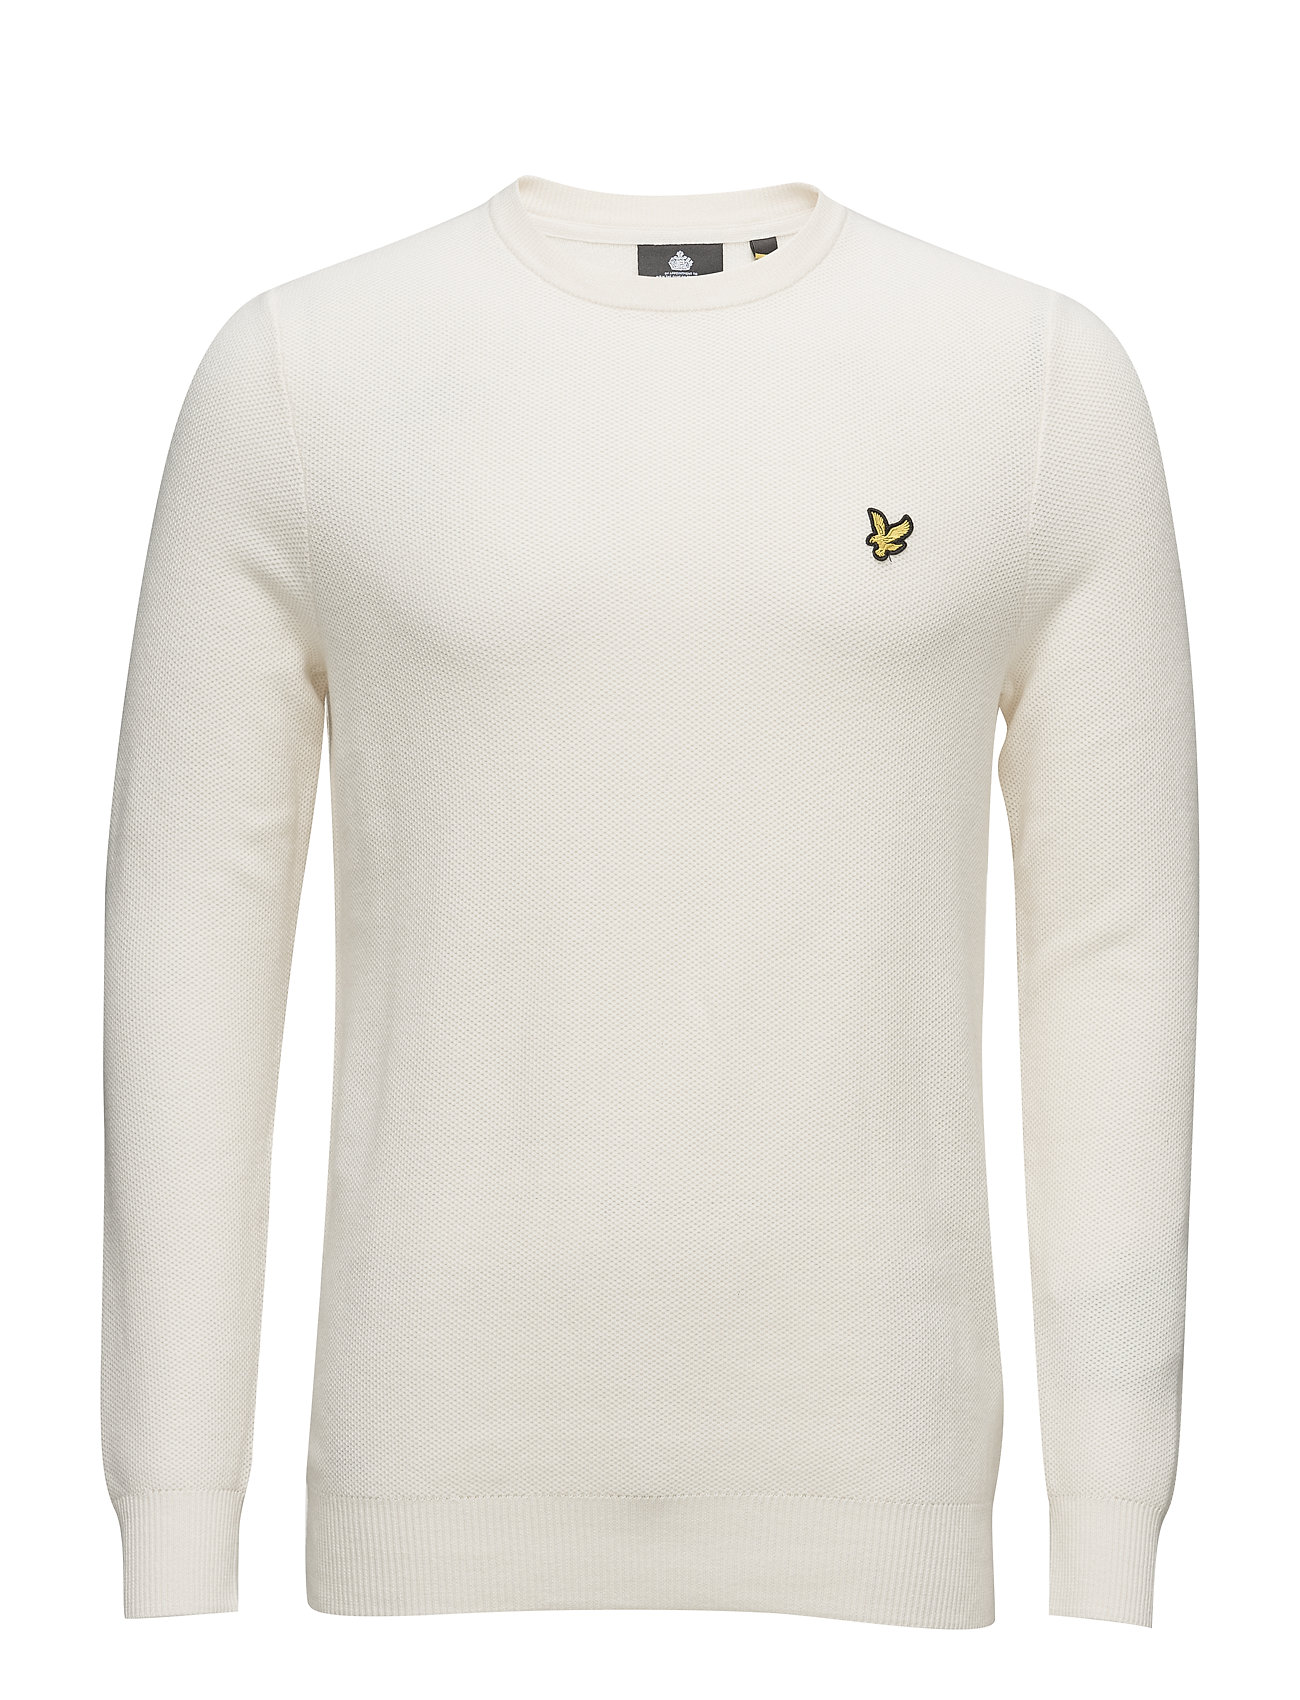 Lyle & Scott Honeycomb Jumper